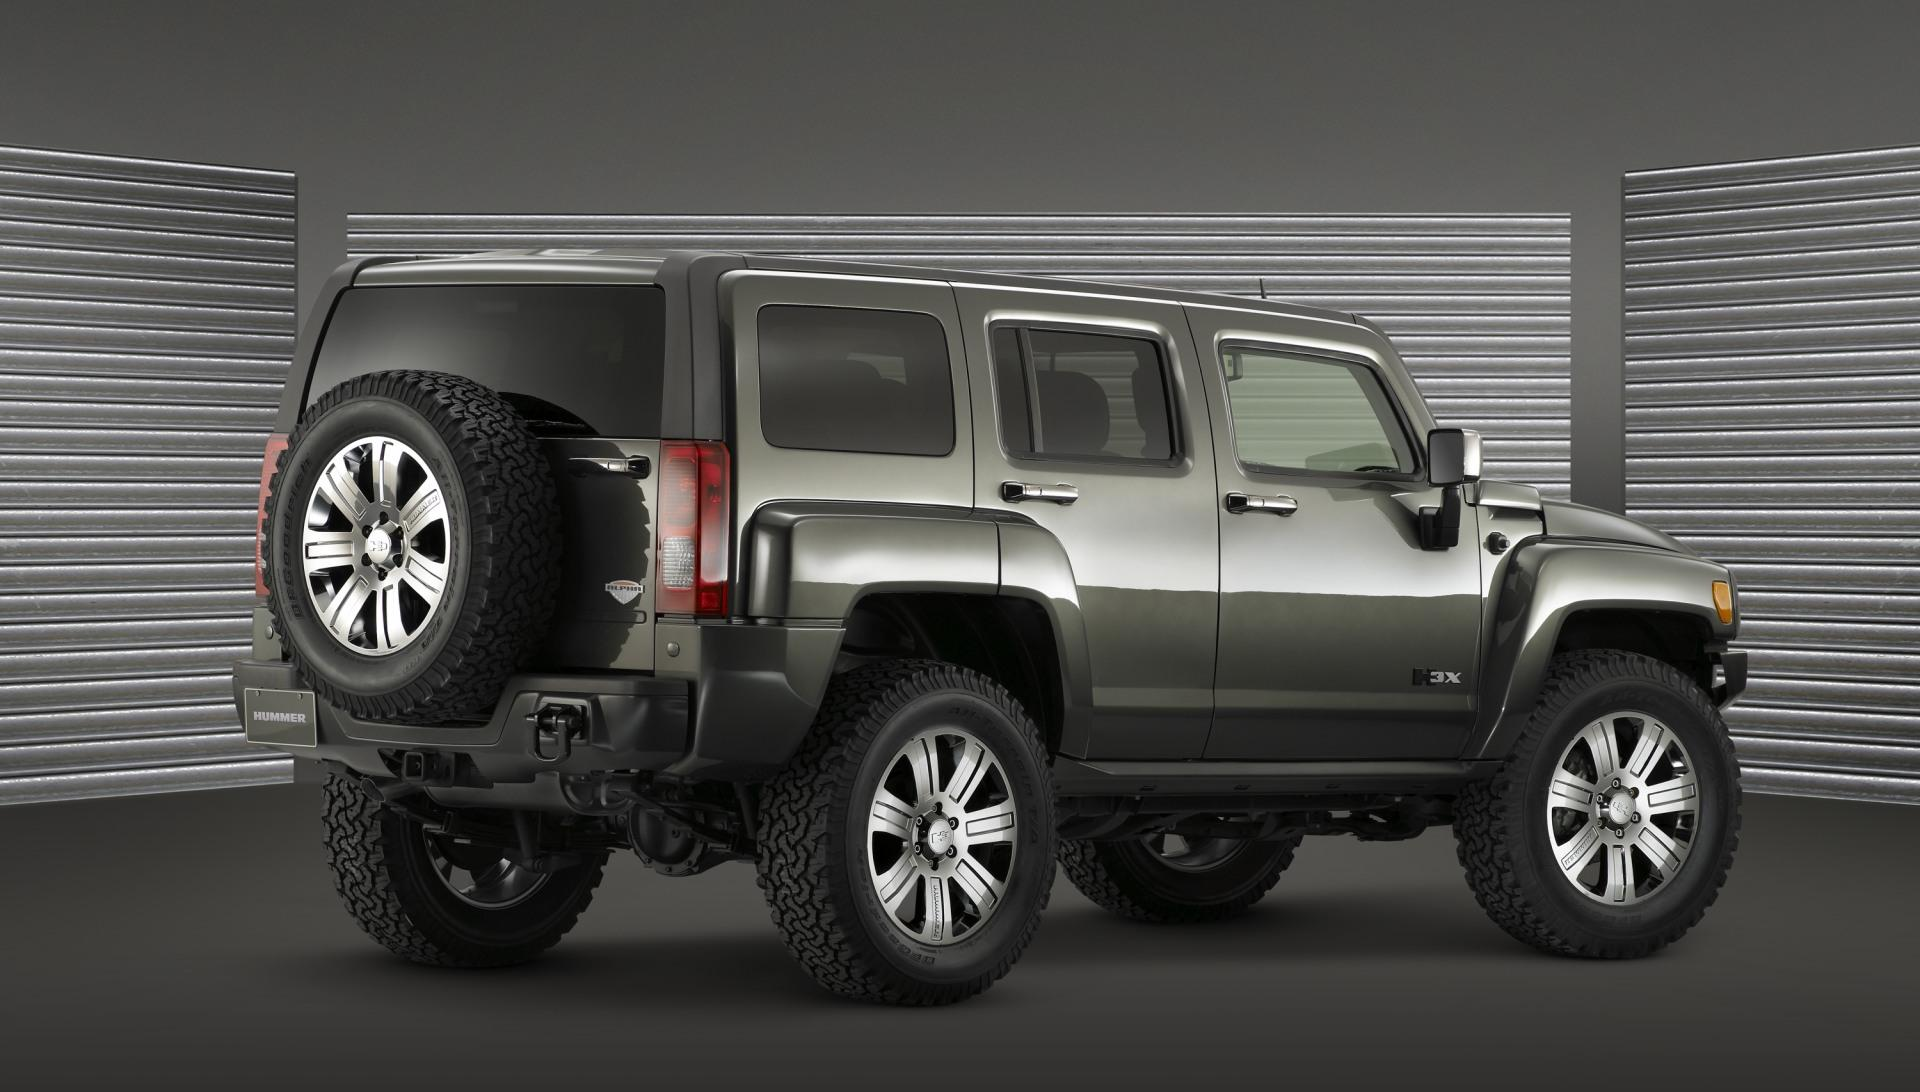 2009 hummer h3 x concept news and information research. Black Bedroom Furniture Sets. Home Design Ideas